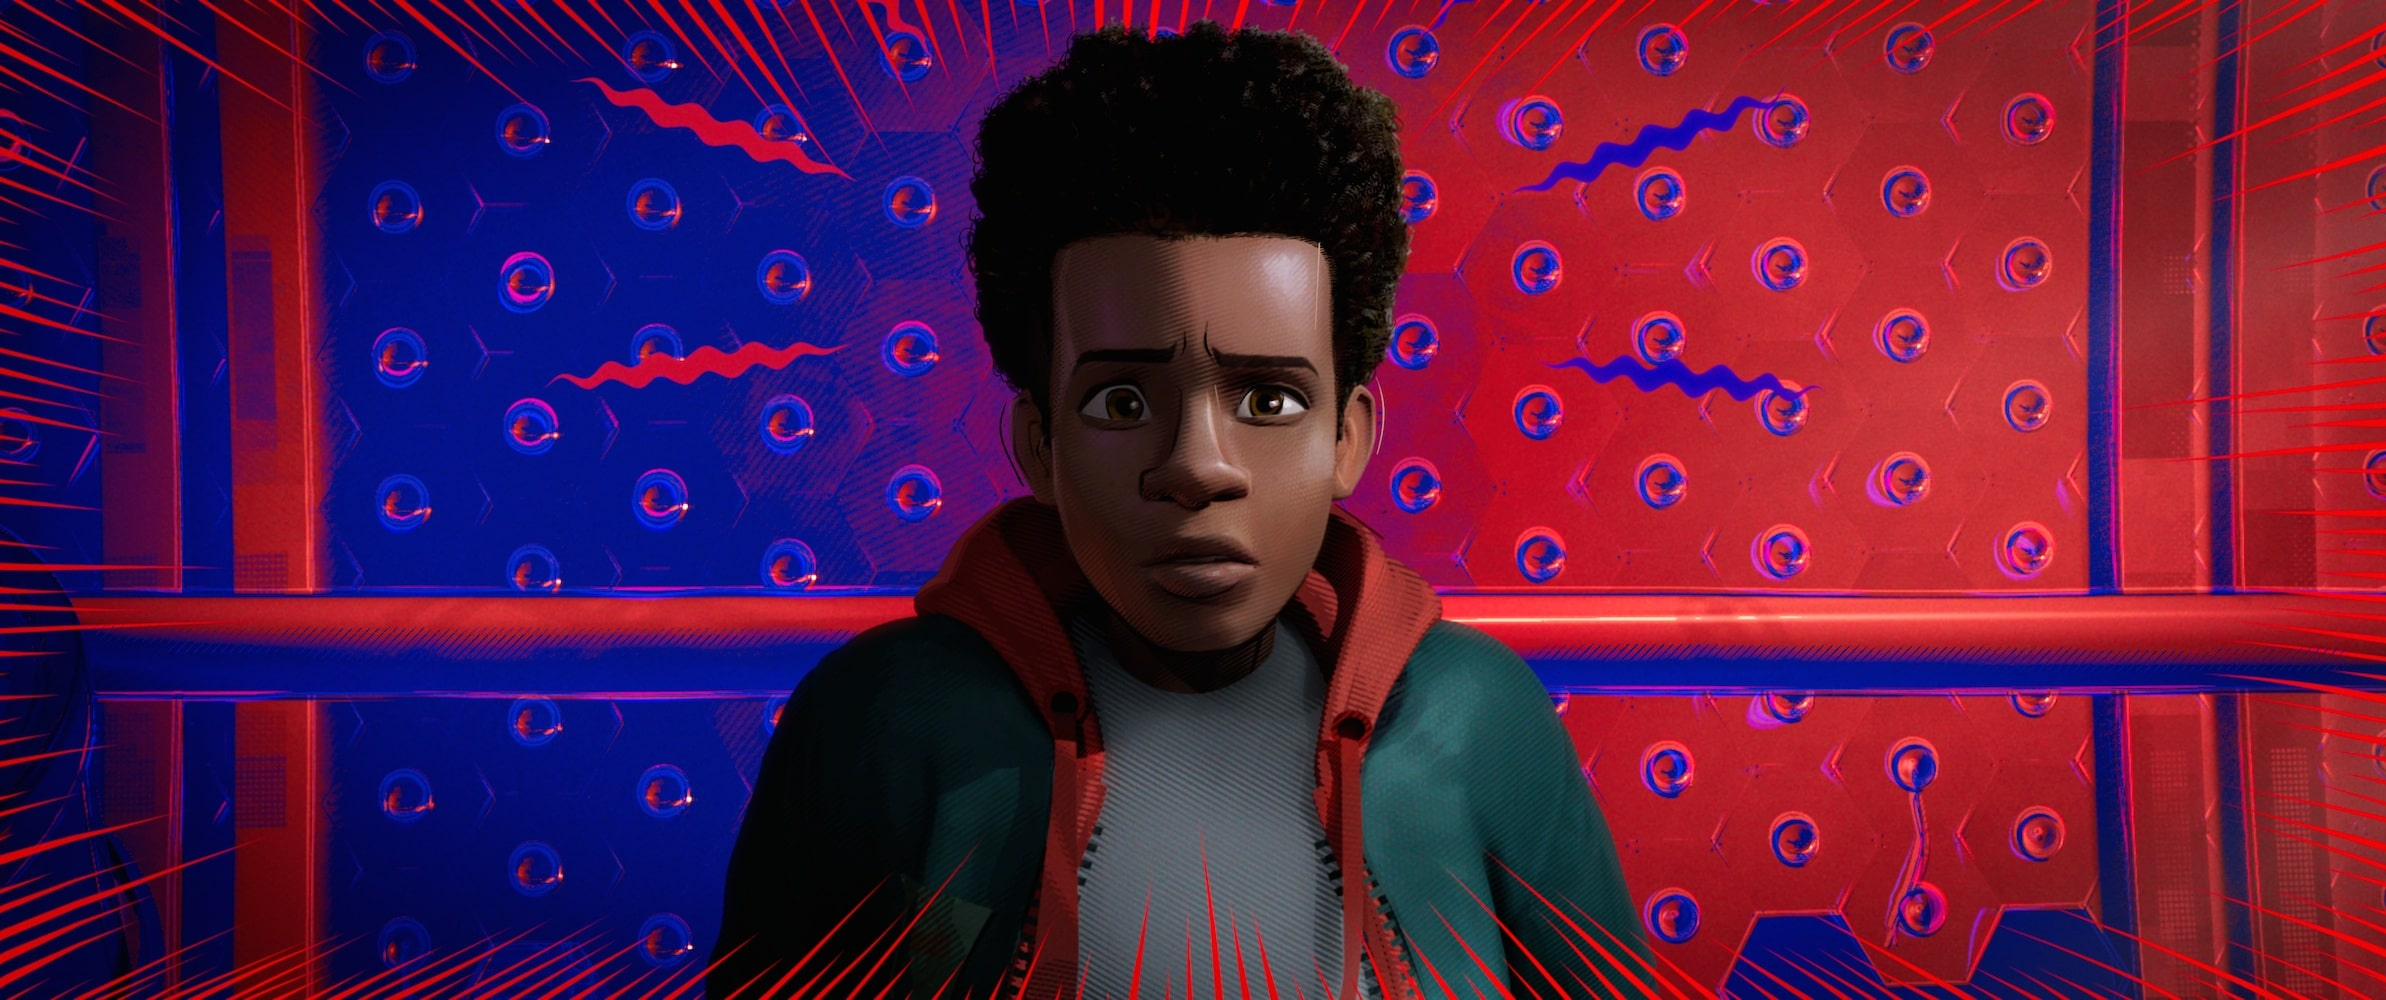 Heads up Miles Morales Fans: Production for 'Spider-Man: Into the Spider-Verse' Sequel Has Begun